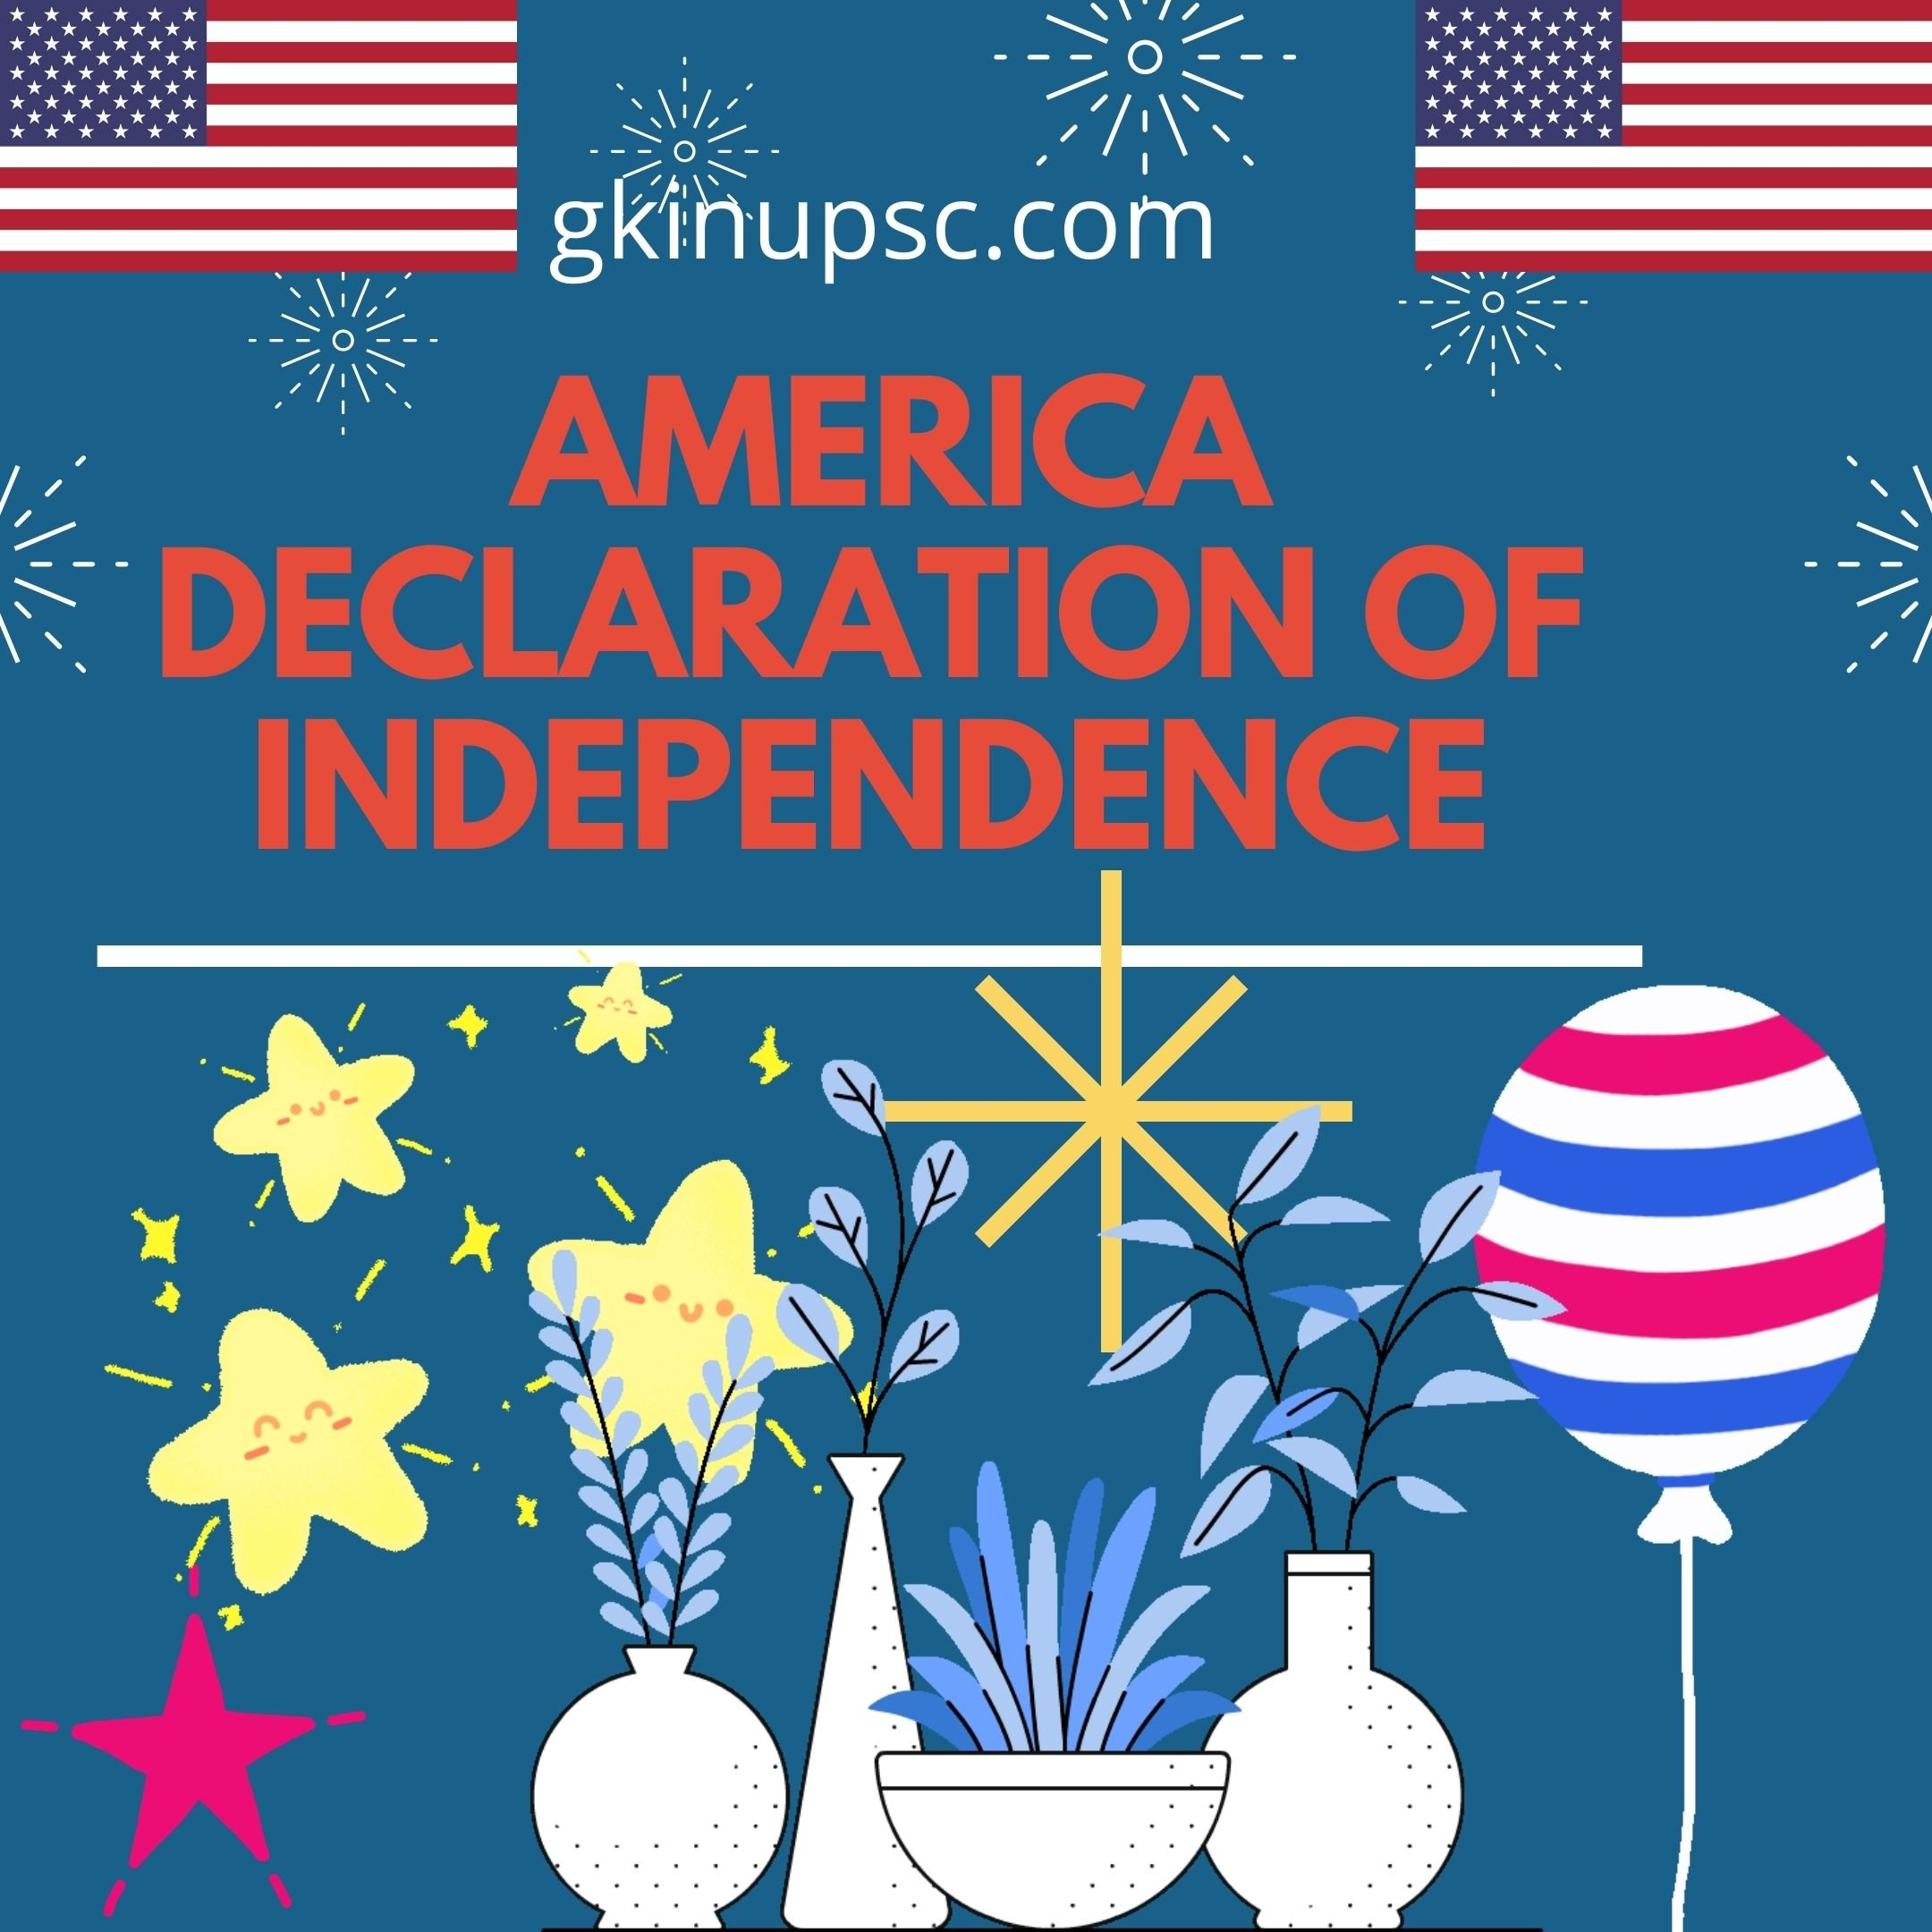 America Declaration of Independence